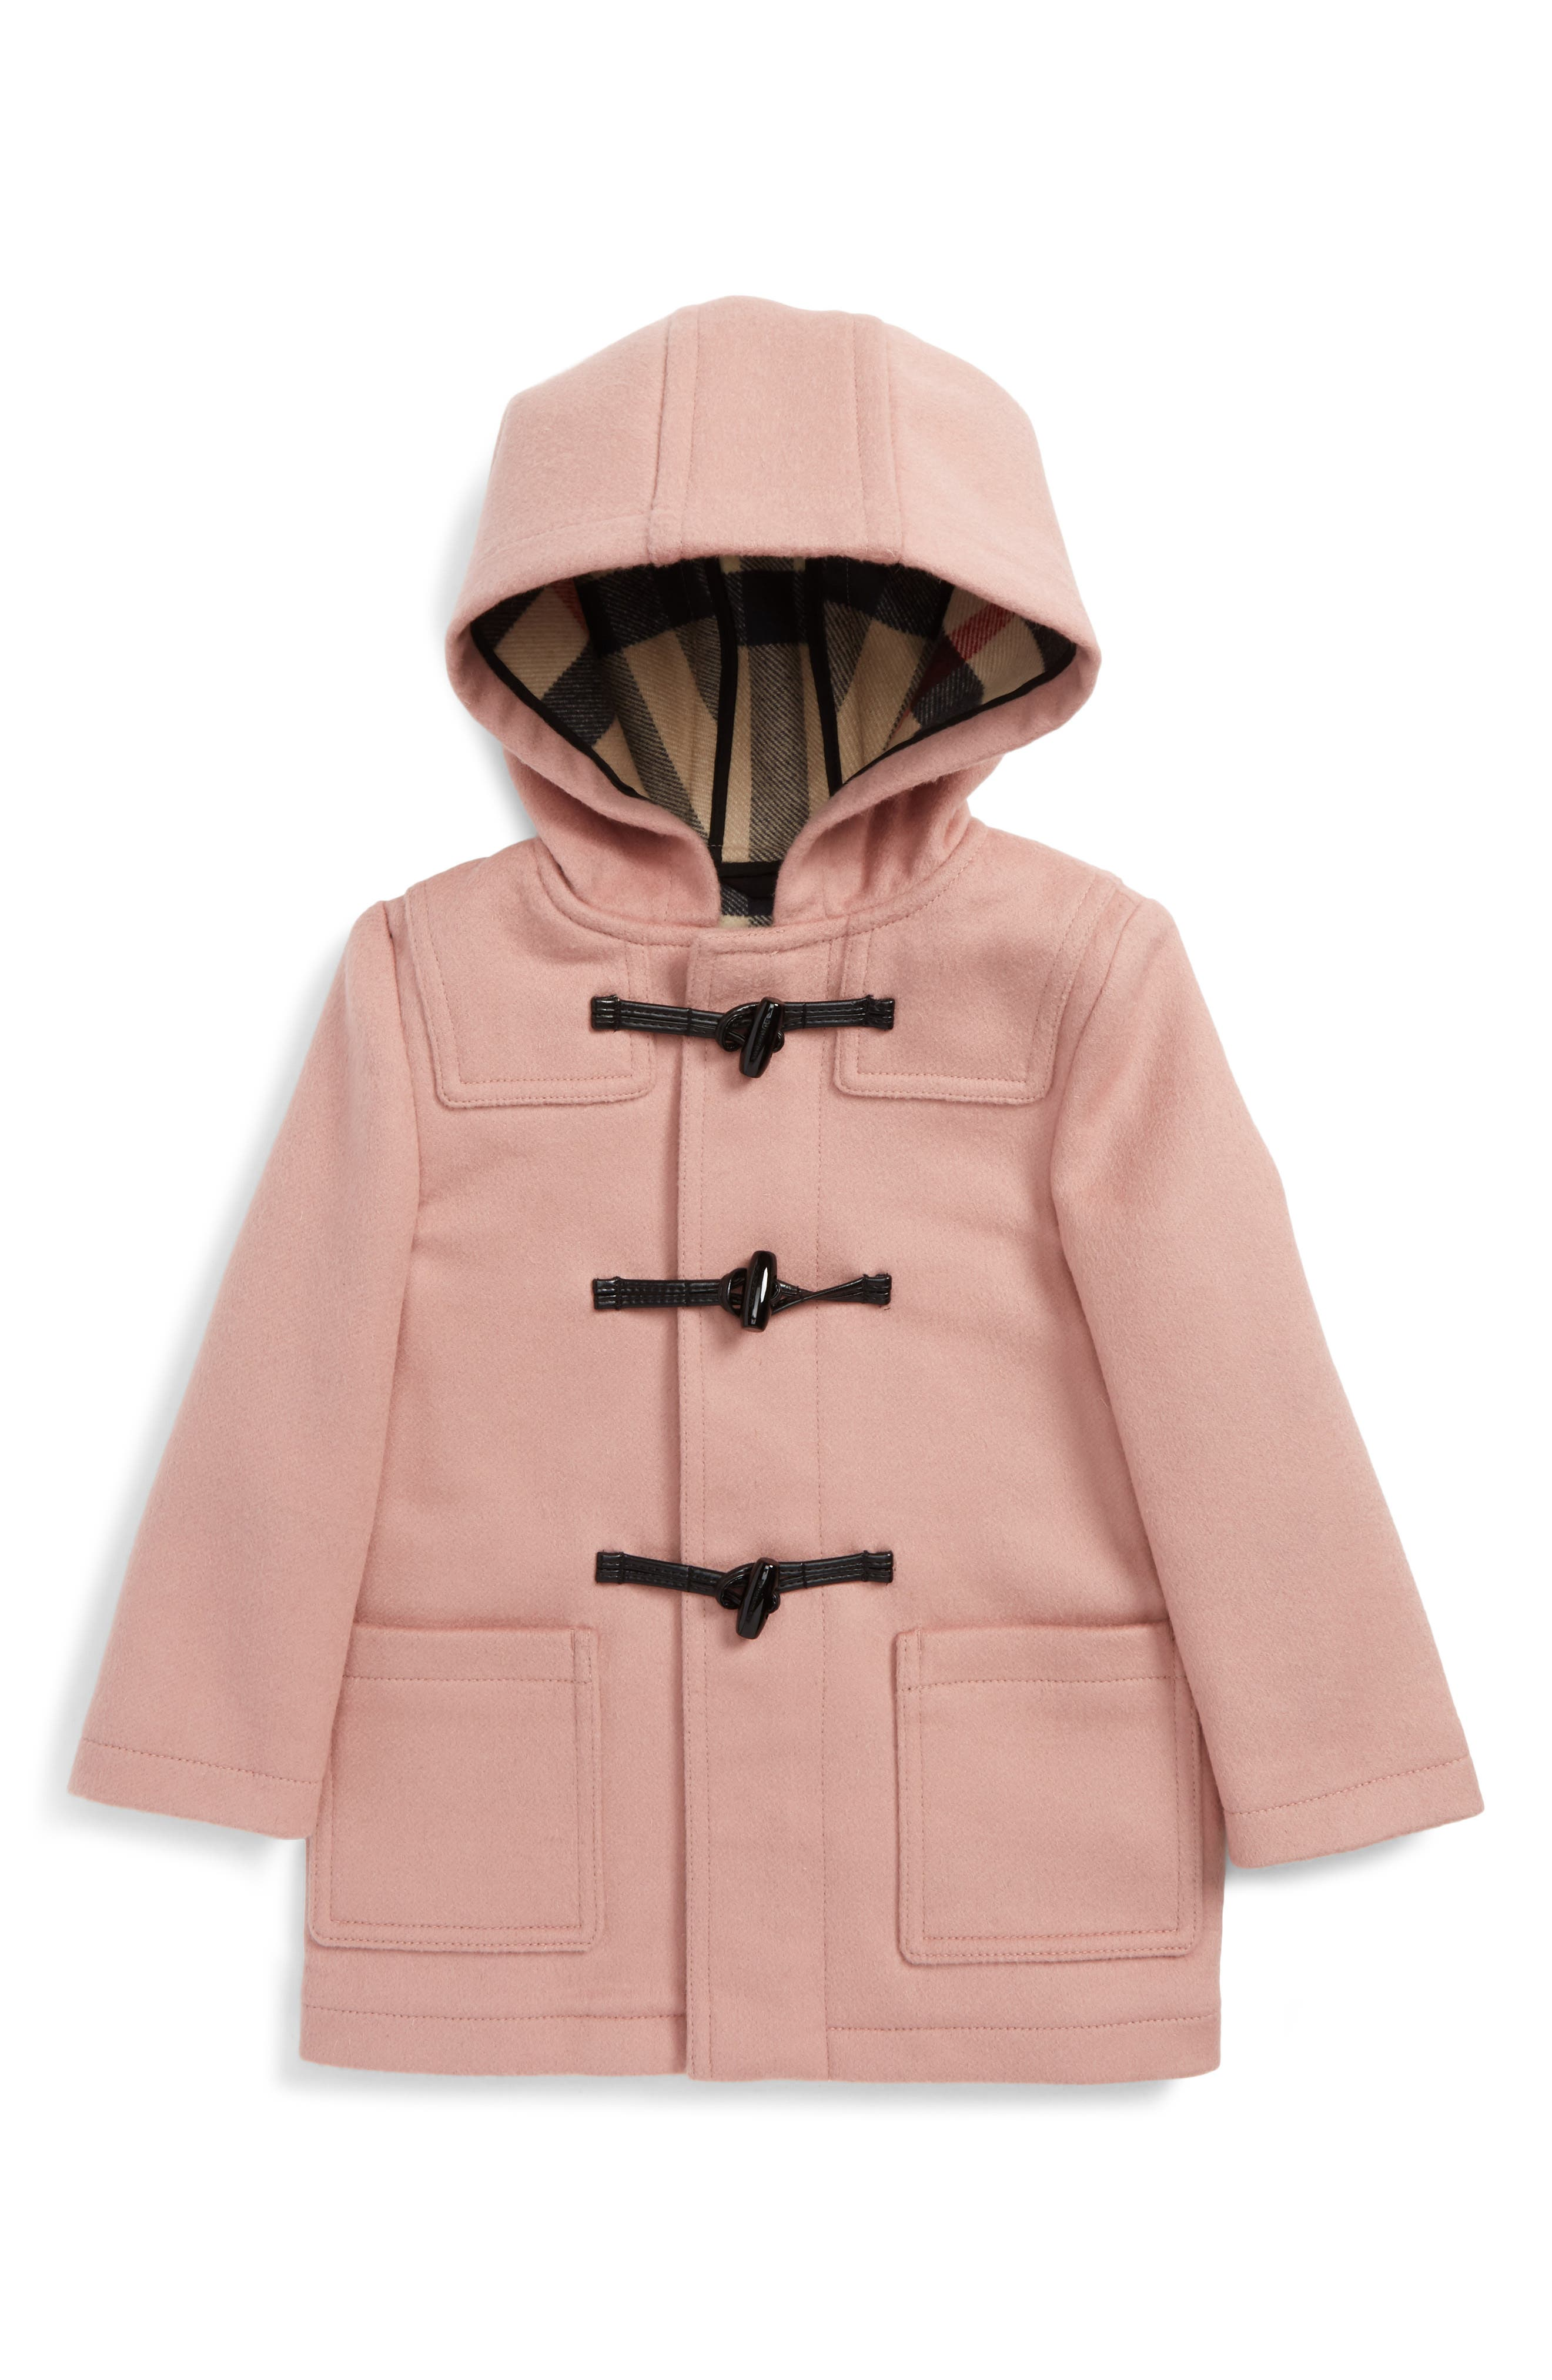 Burberry Brogan Hooded Wool Toggle Coat (Baby Girls & Toddler Girls)